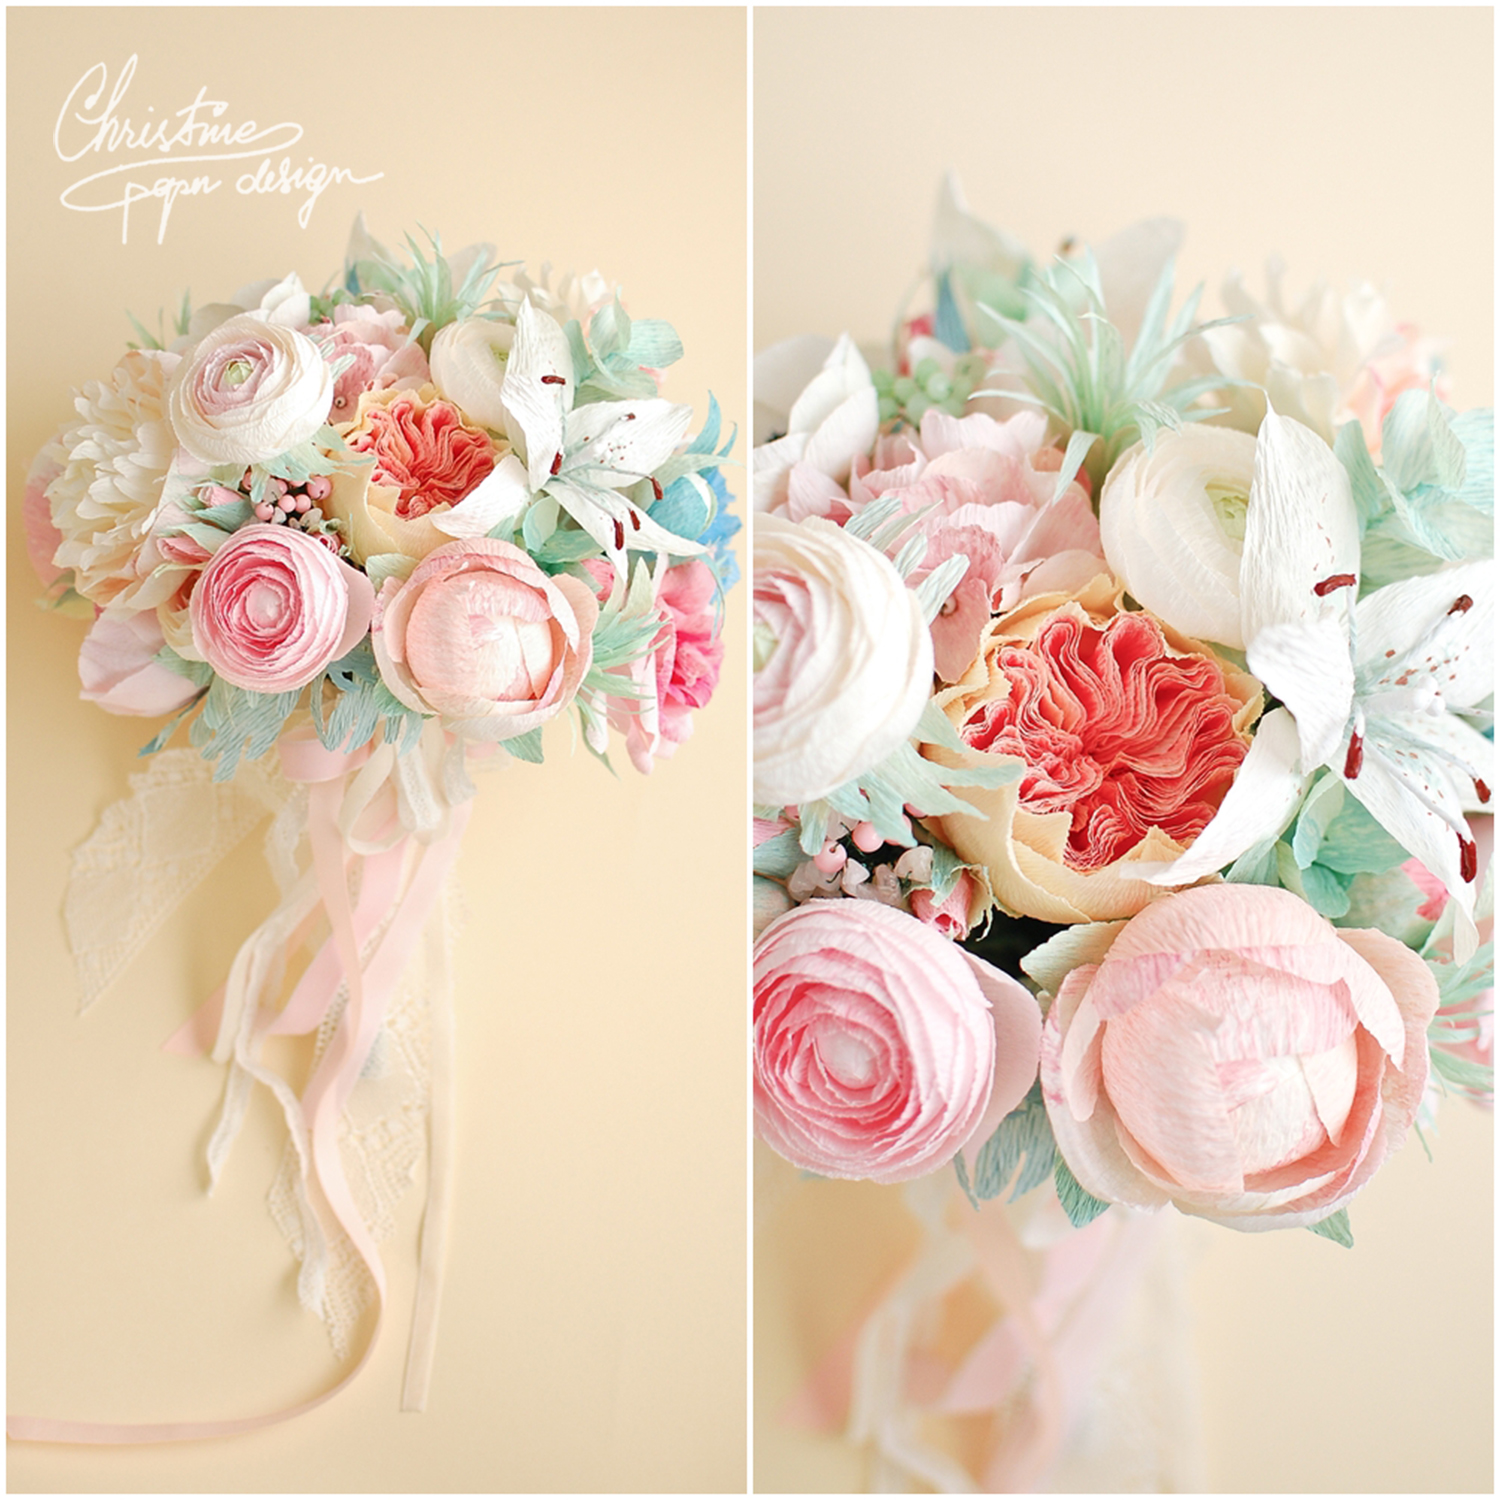 1.Christine paper design - wedding